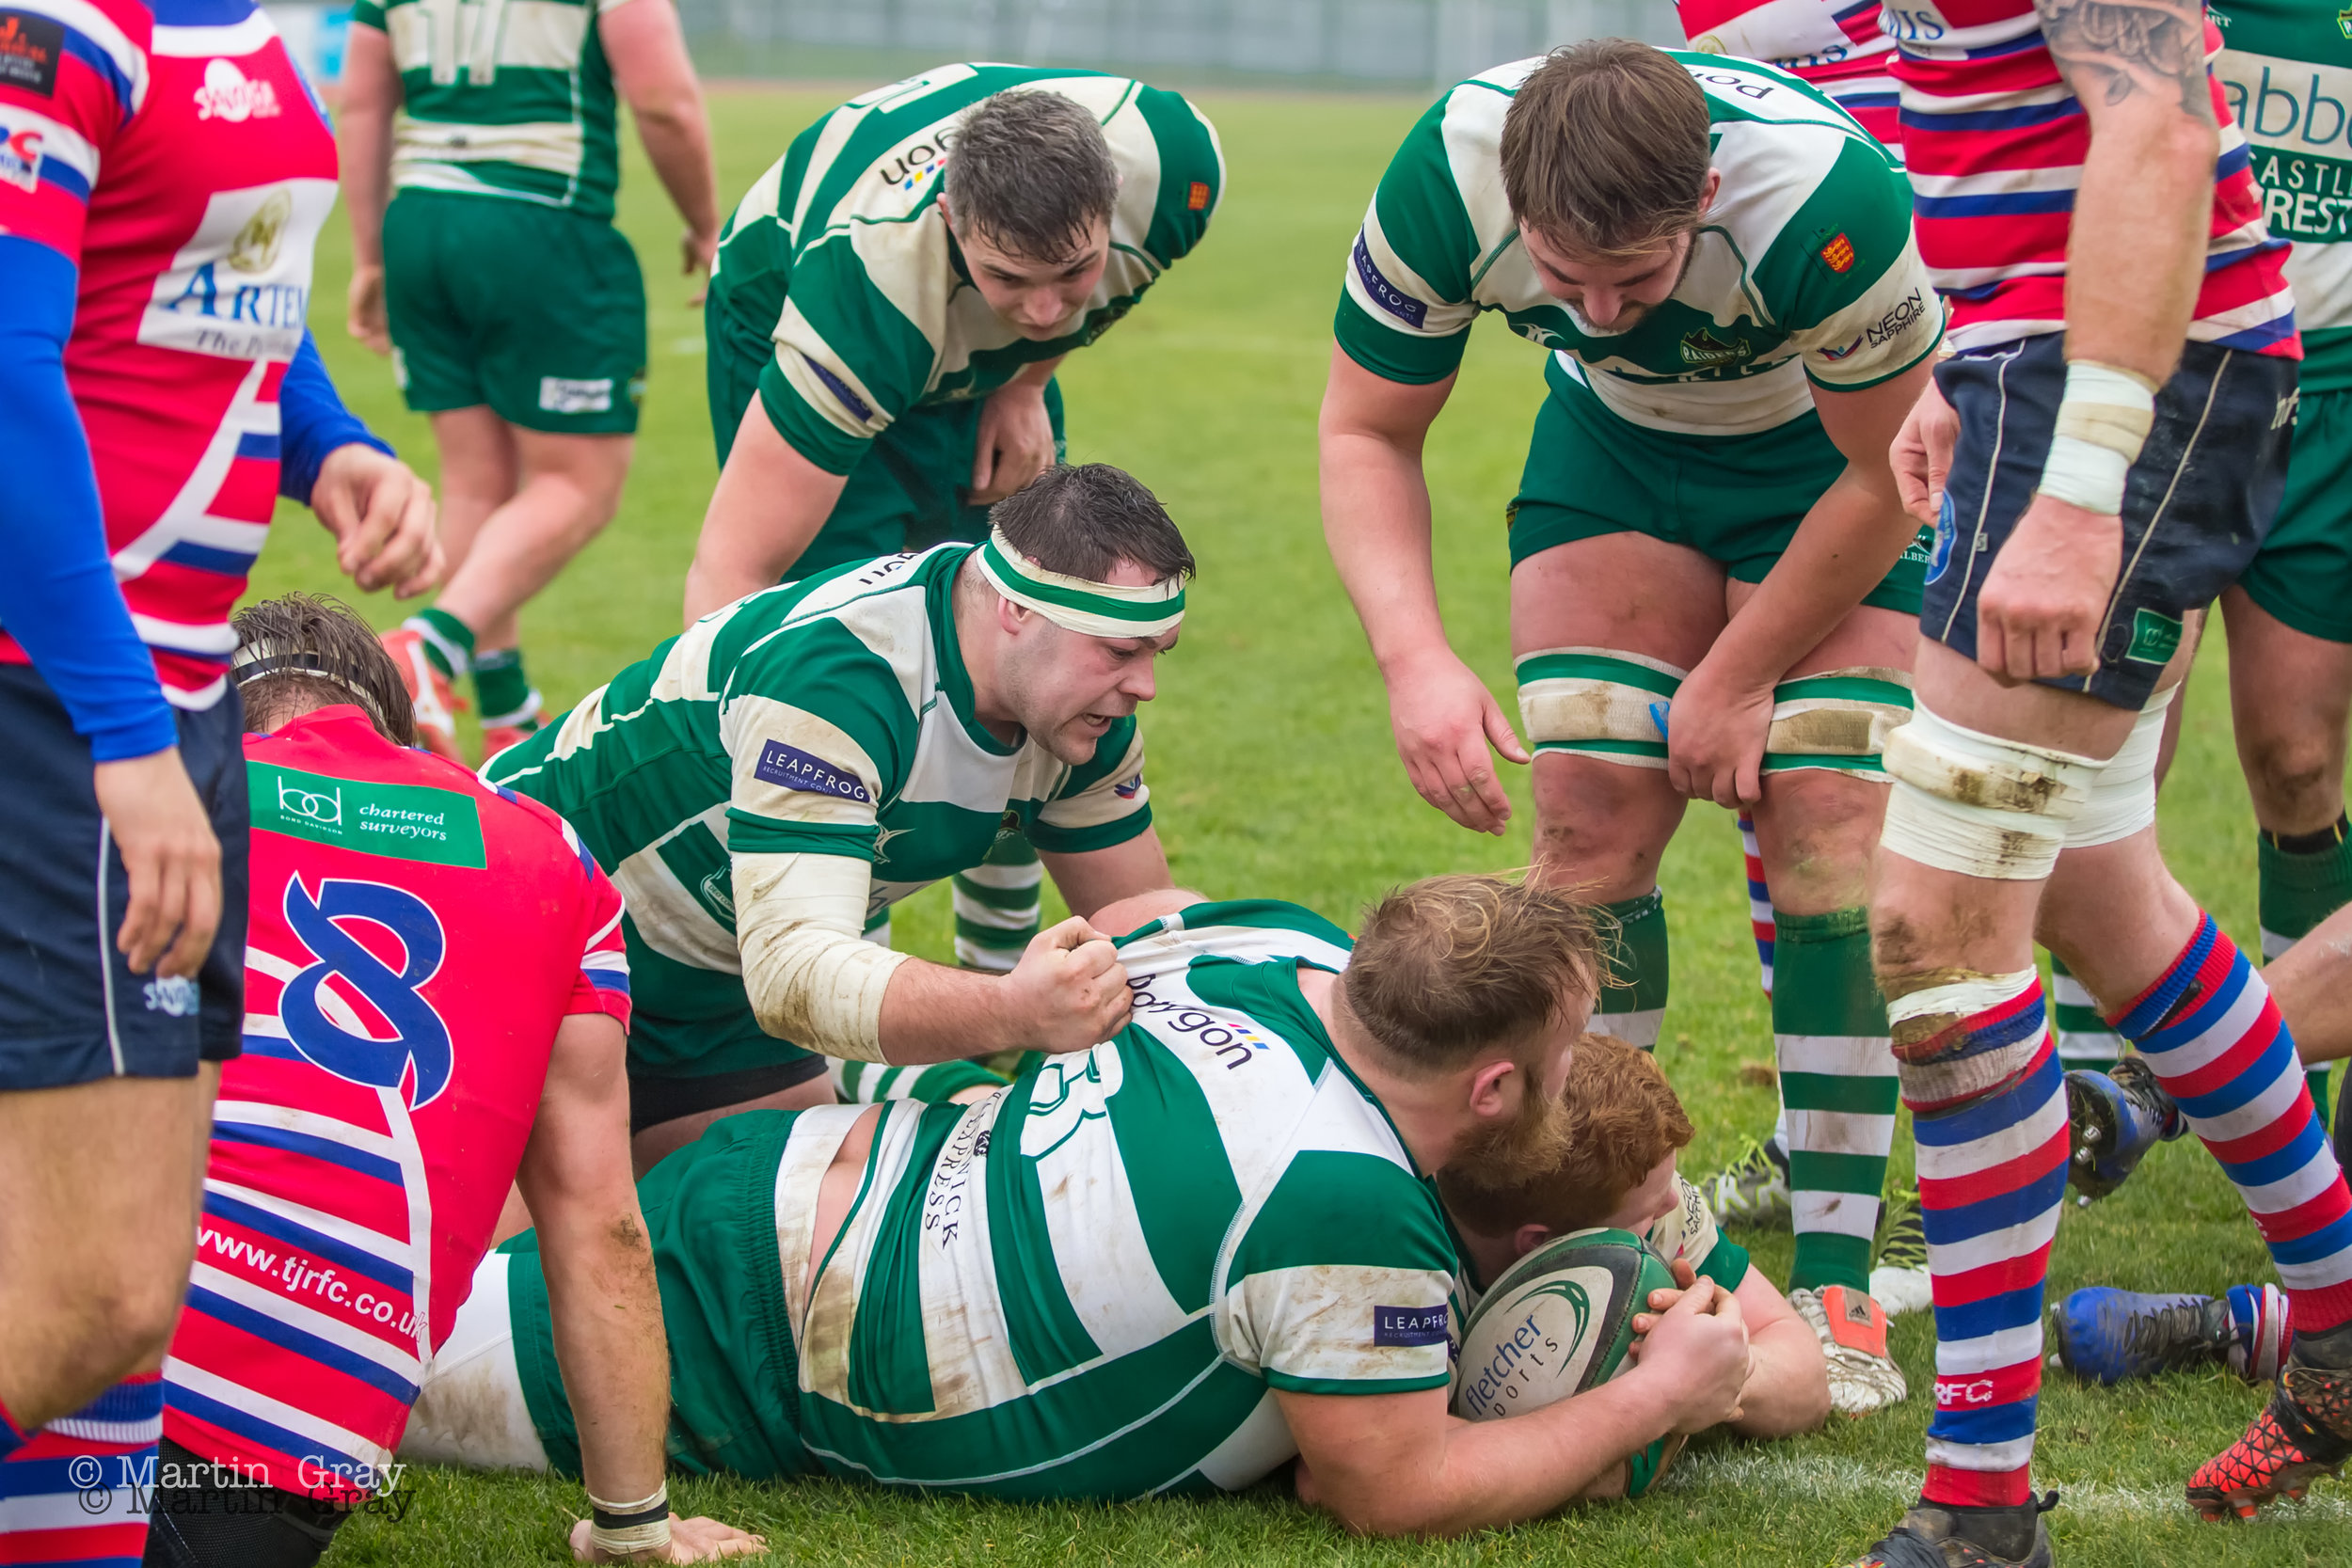 Guernsey Raiders v Tonbridge Juddians played at Footes Lane 16th Feb 2019… TJ's win 17-35…